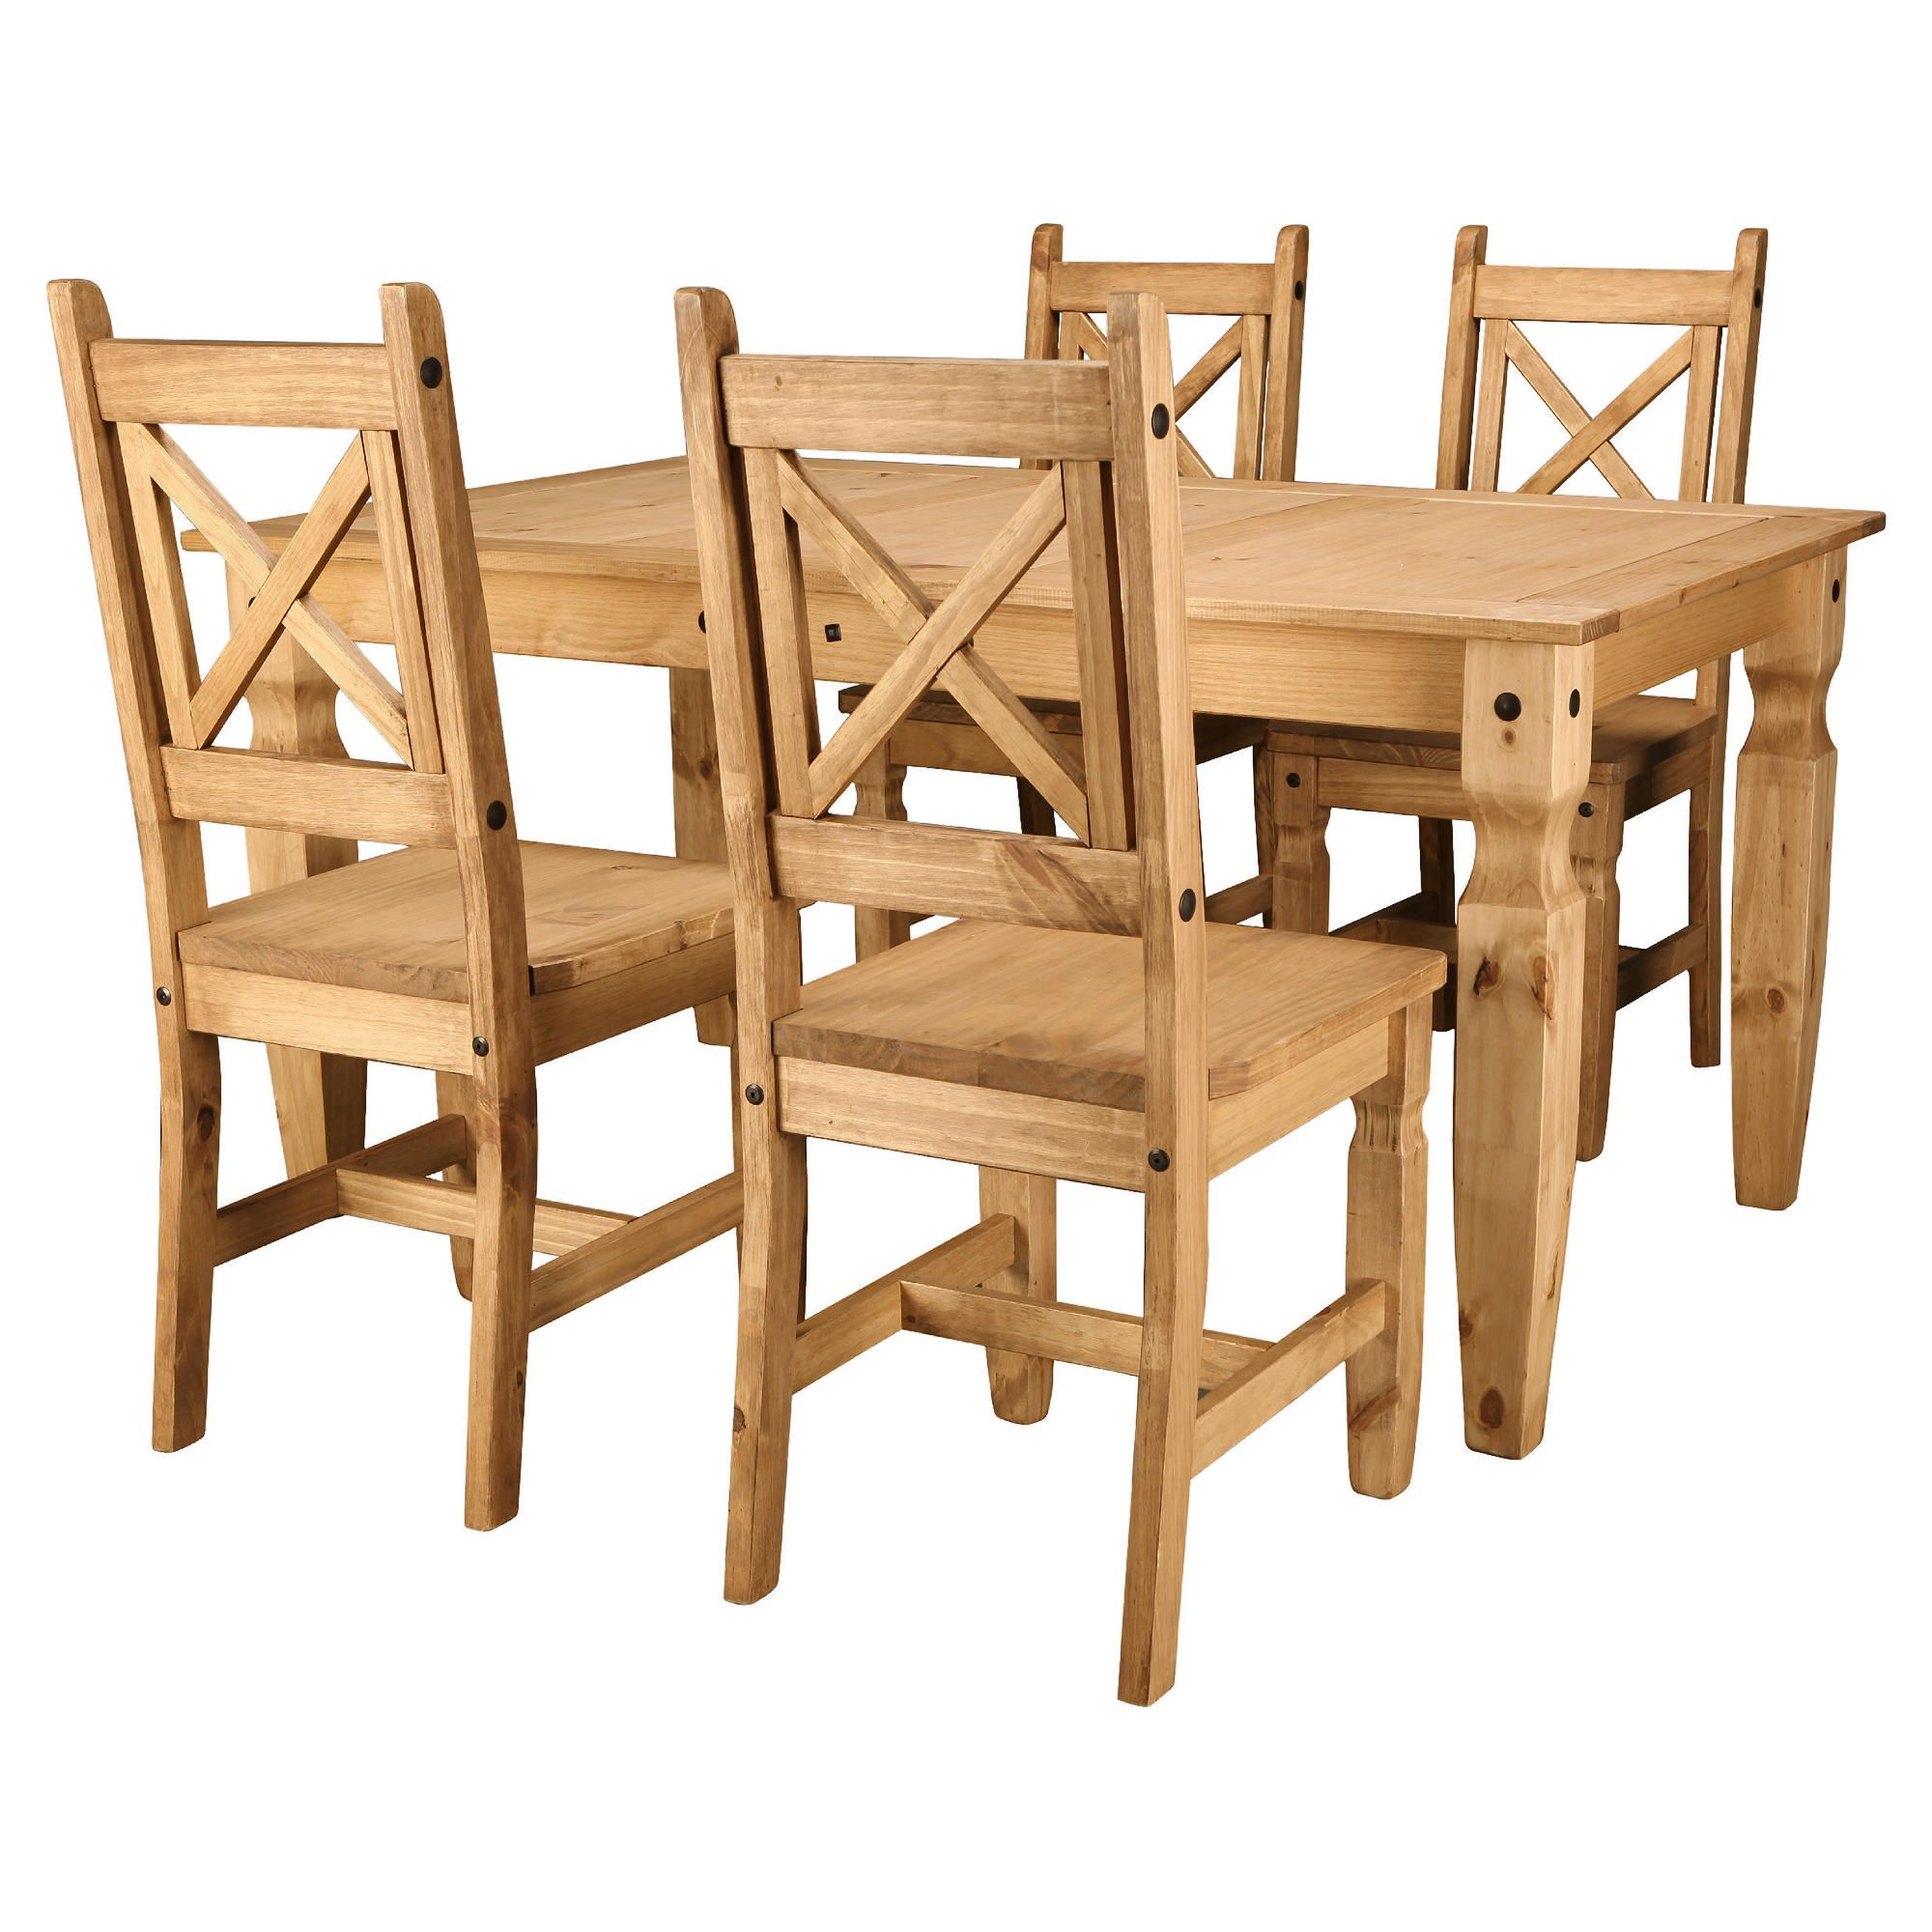 Cordoba 4 Seater Dining Set. at Tesco Direct